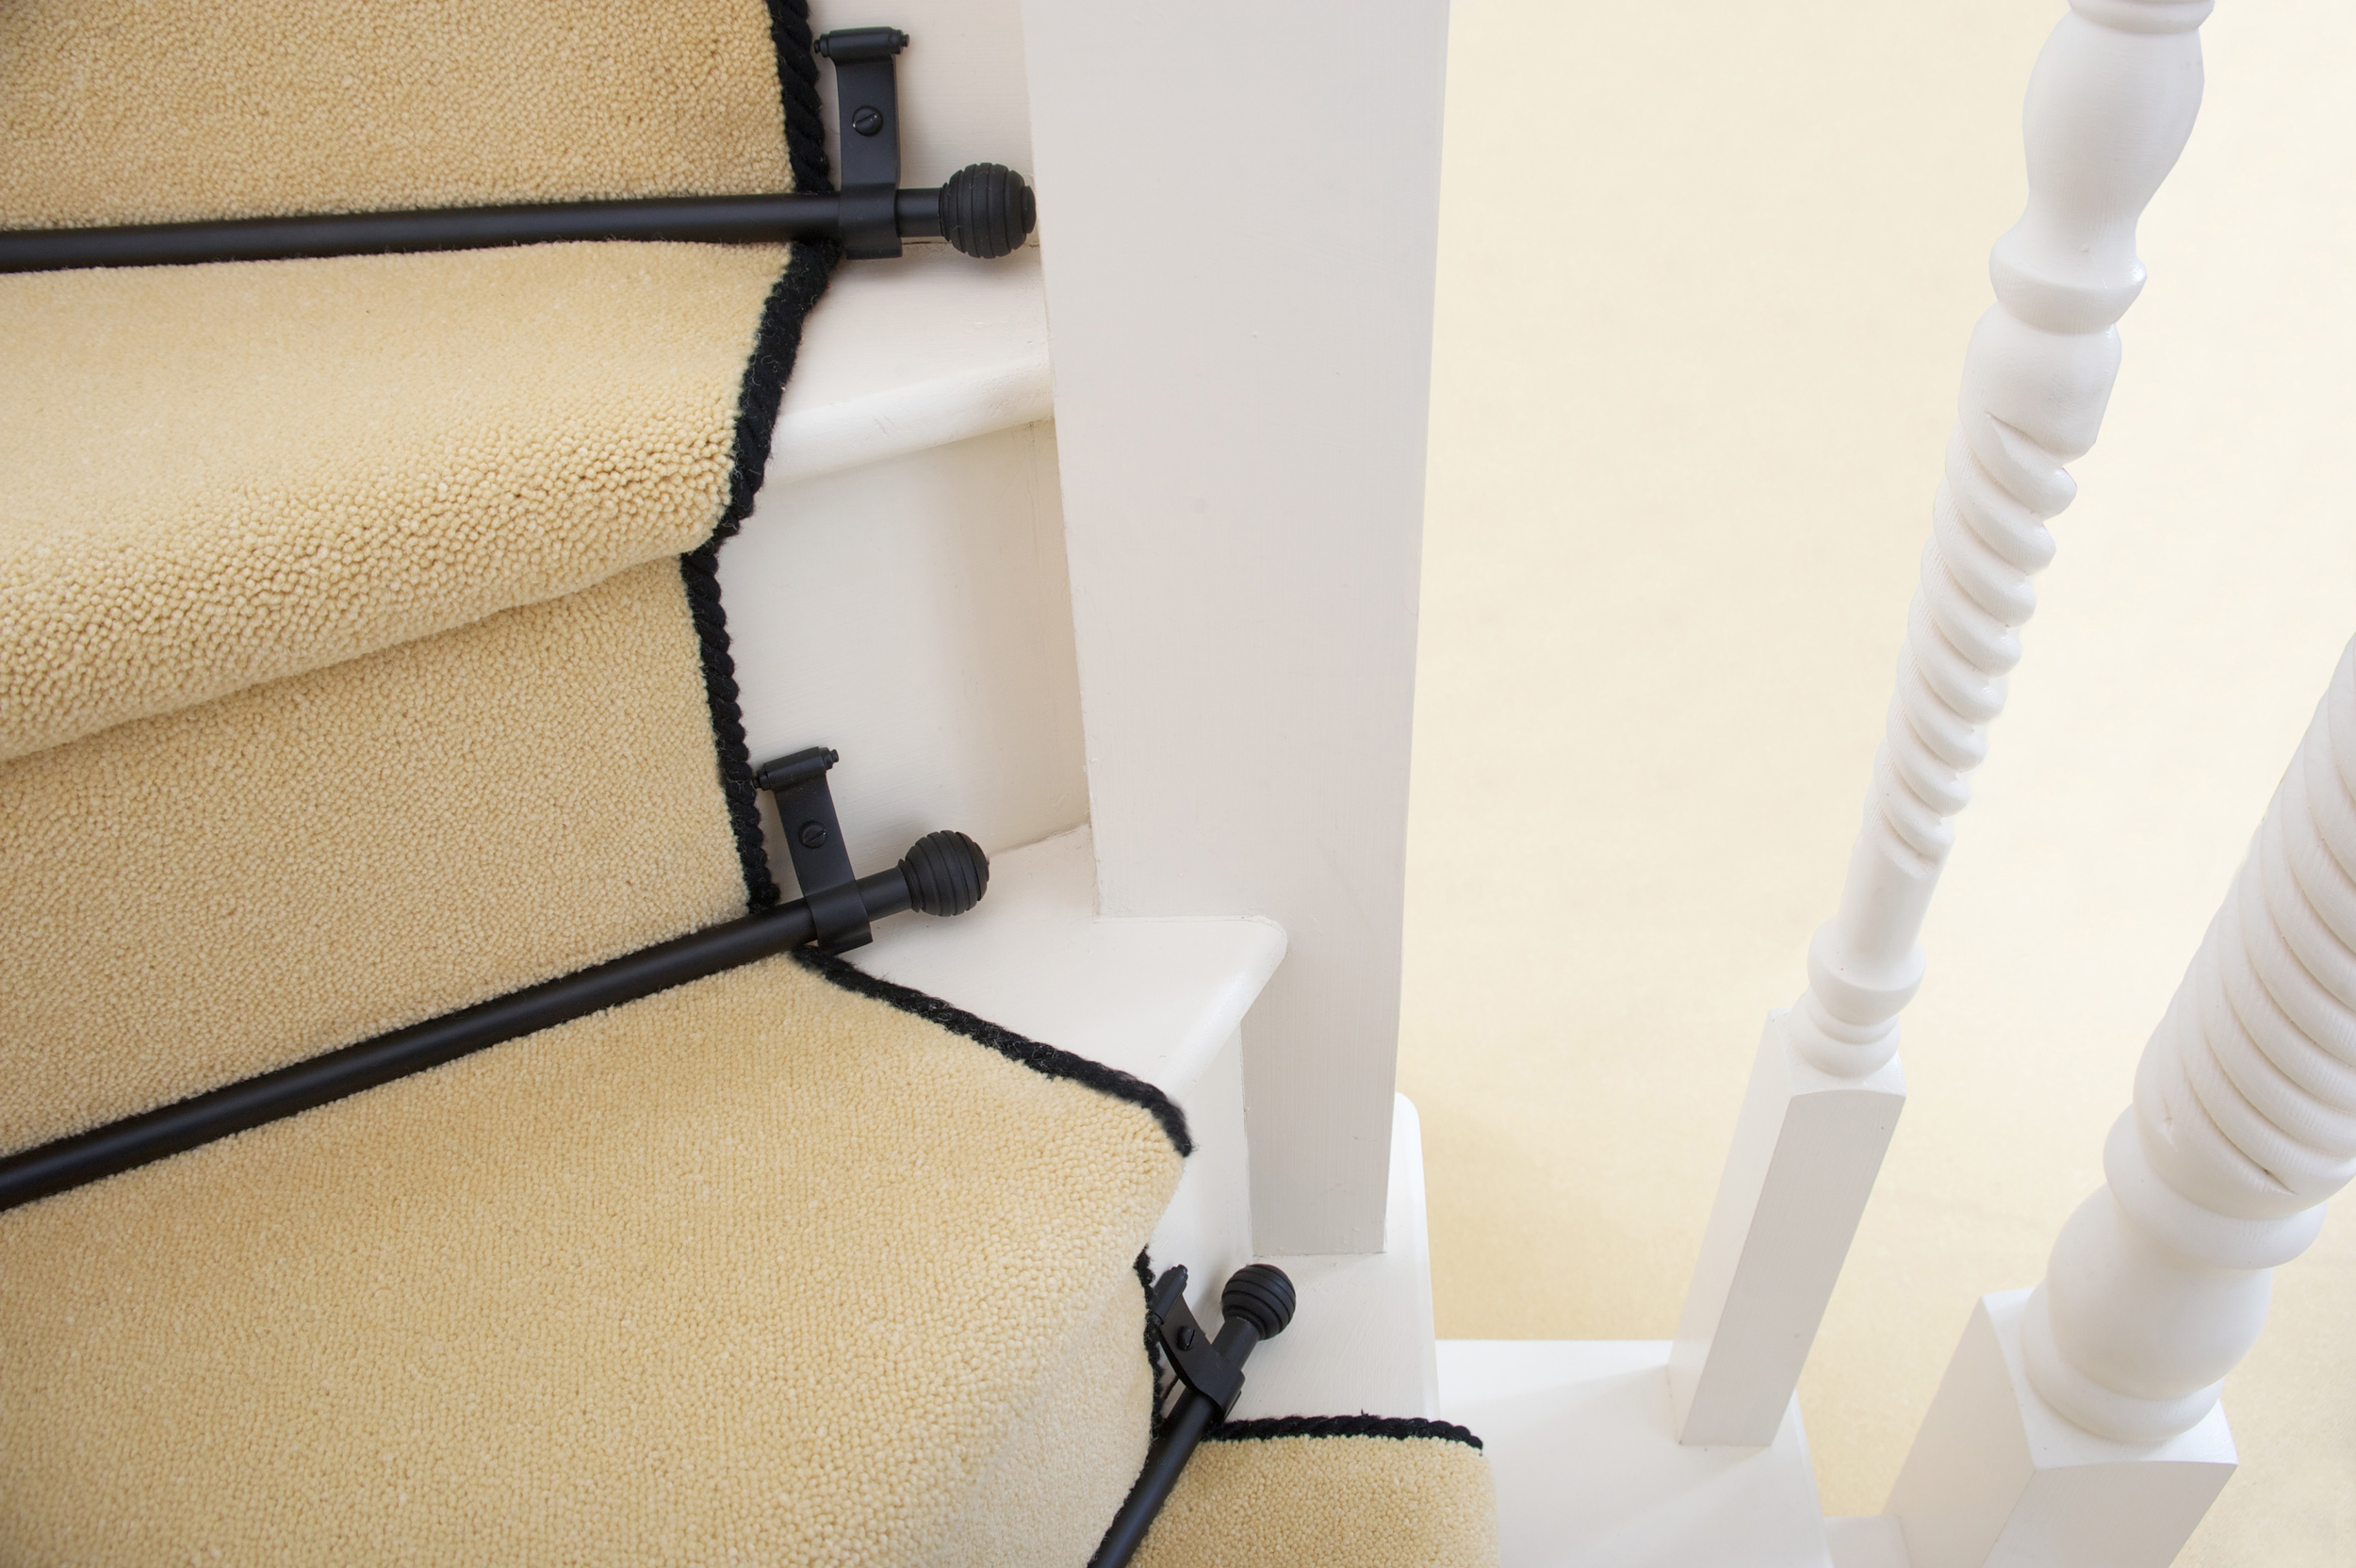 Universal Bracket used to fit stair rods on winding staircases.